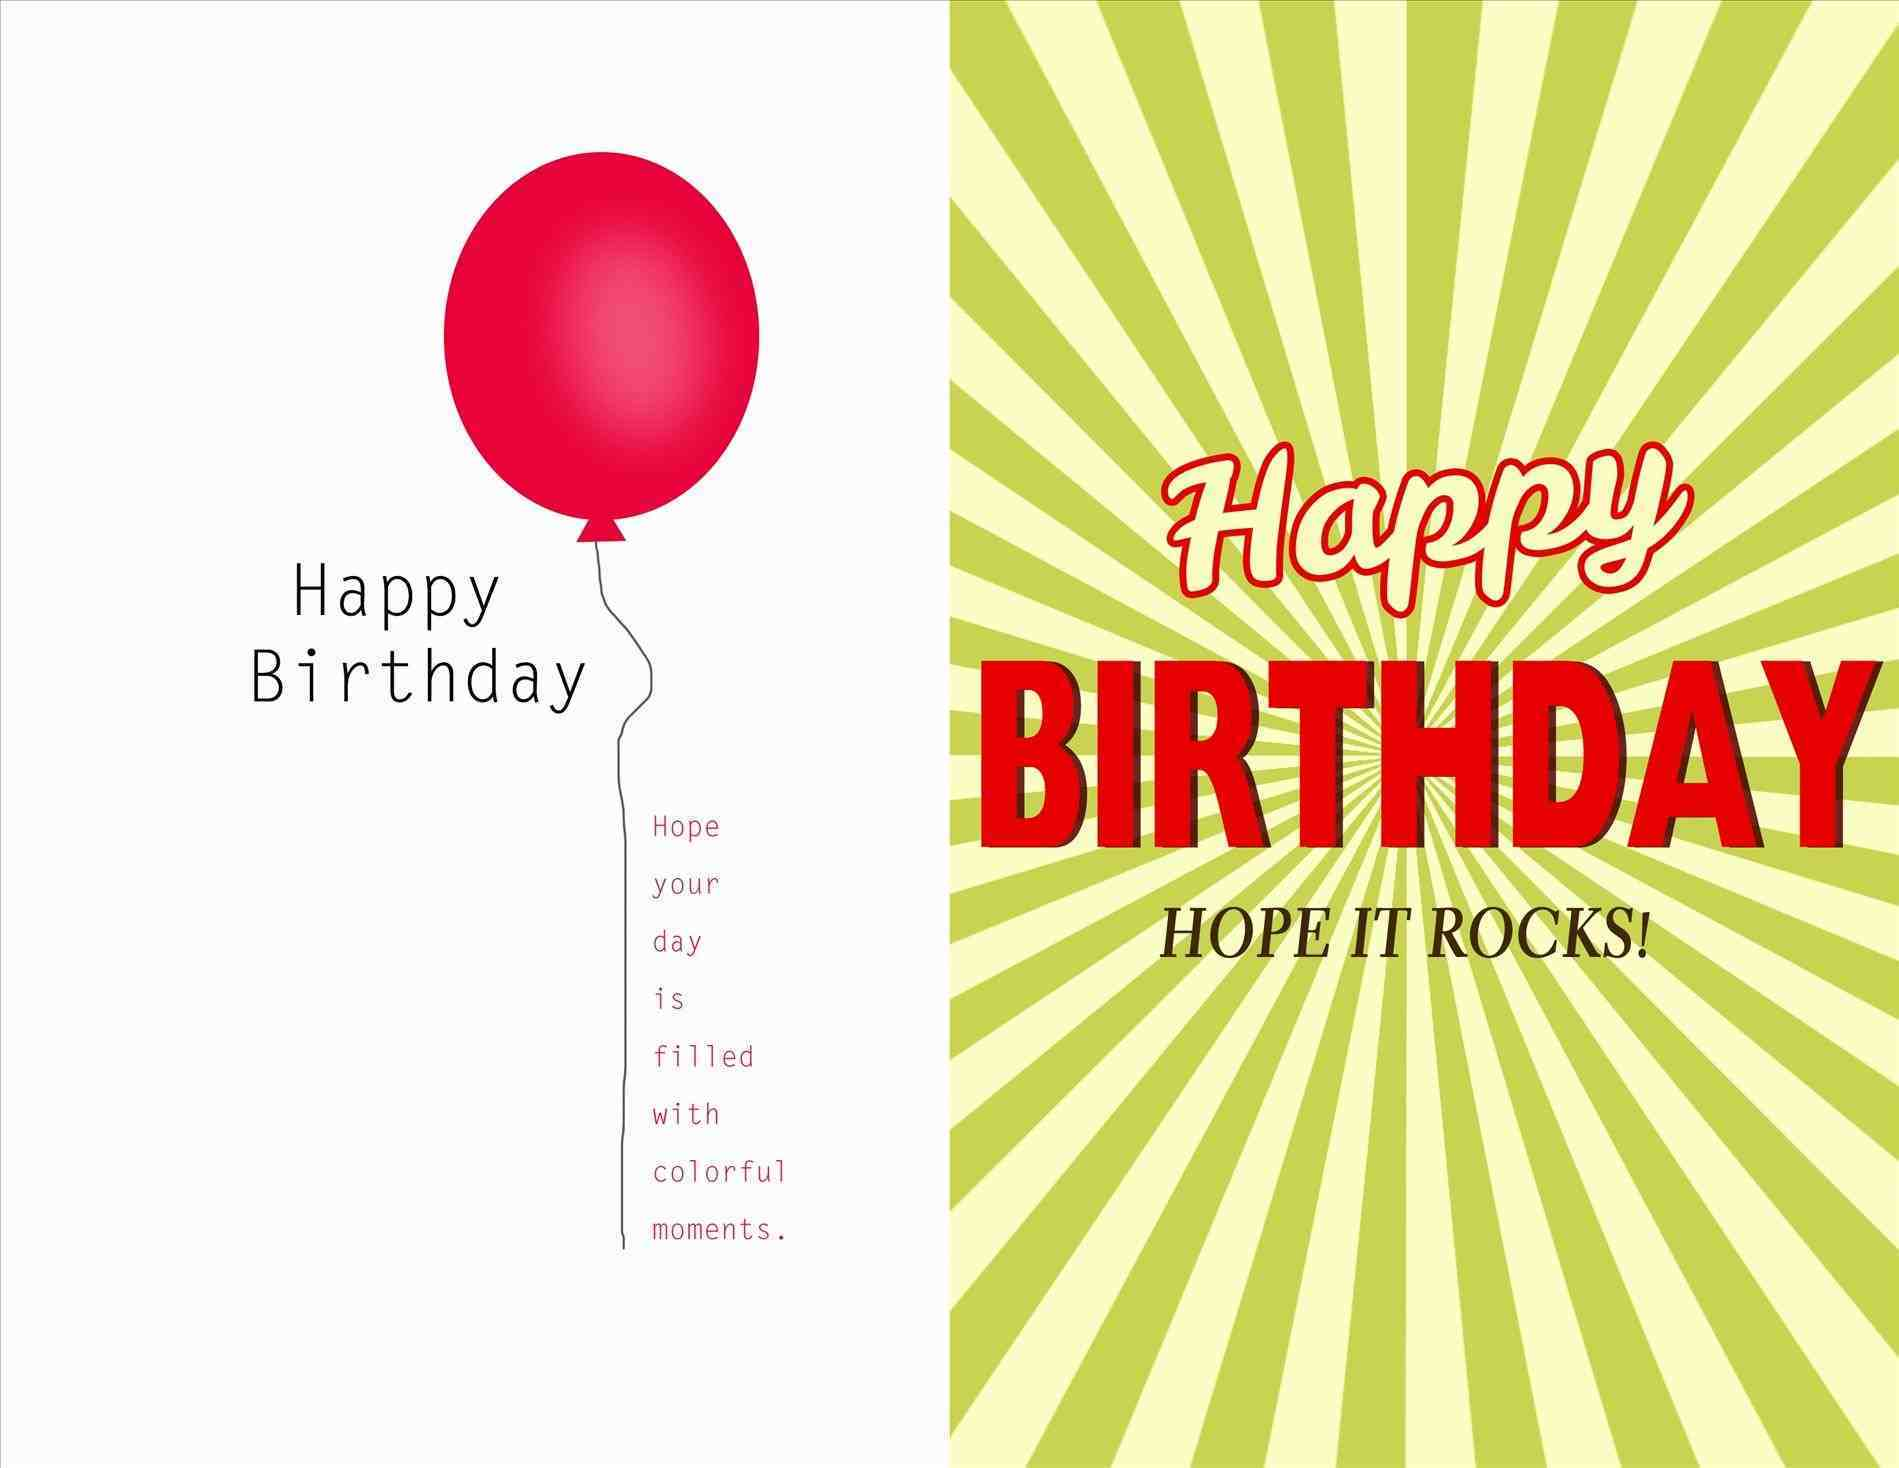 free birthday card templates for mac ; word-greeting-card-template-mac-inspirational-free-greeting-card-template-word-idealstalist-of-word-greeting-card-template-mac